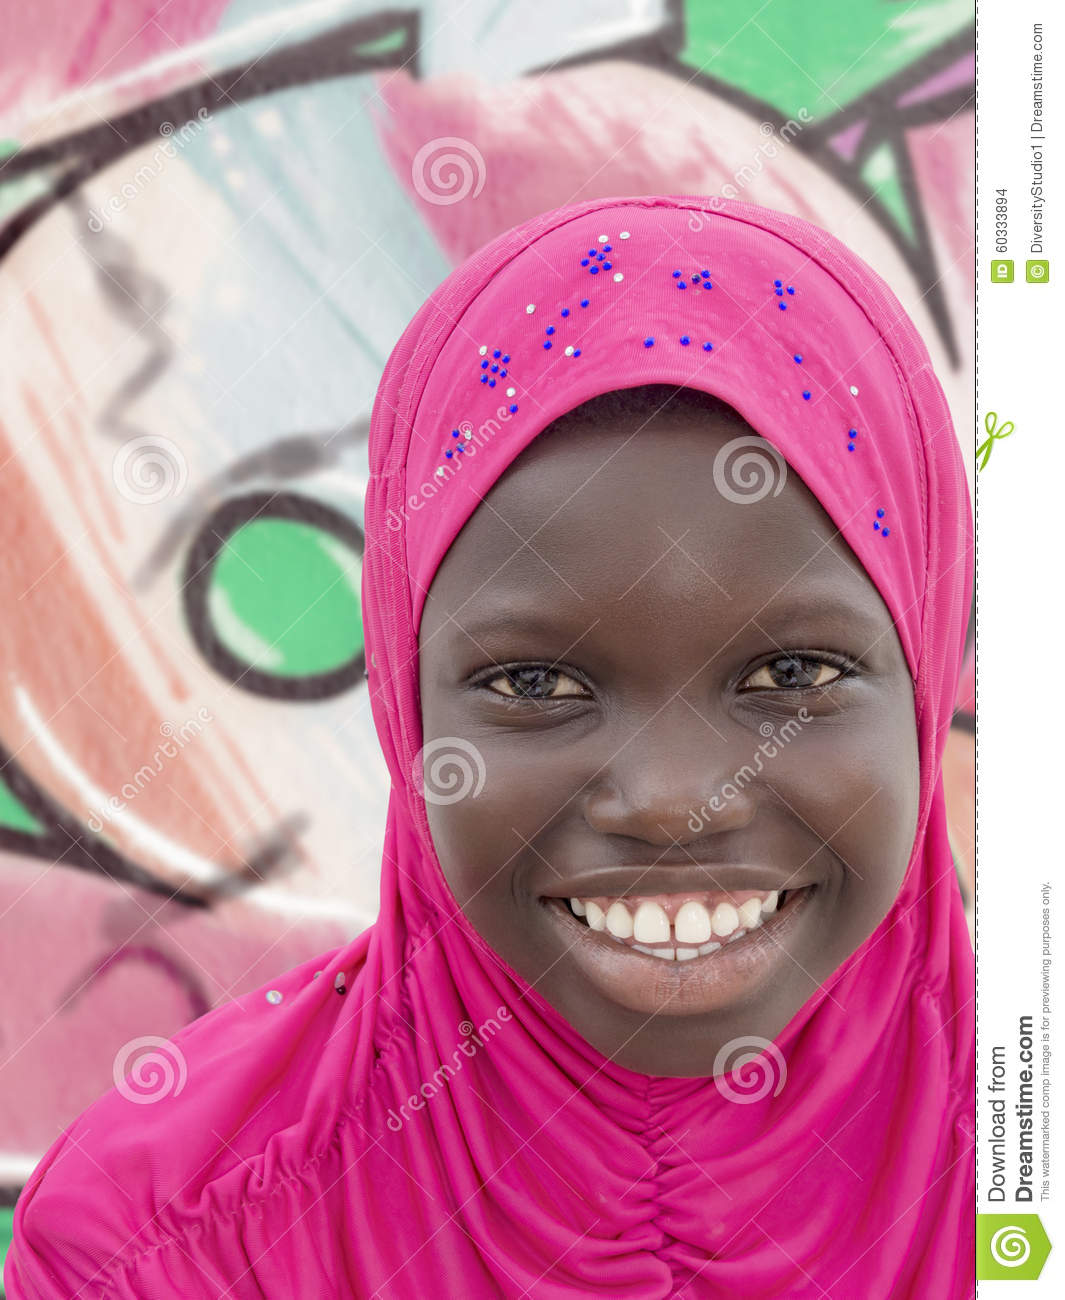 olds muslim girl personals Signup to see thousands more profiles inside signup to lovehabibi welcome to lovehabibi - we've helped thousands of arab and muslim singles worldwide find love and someone to share their lives with.